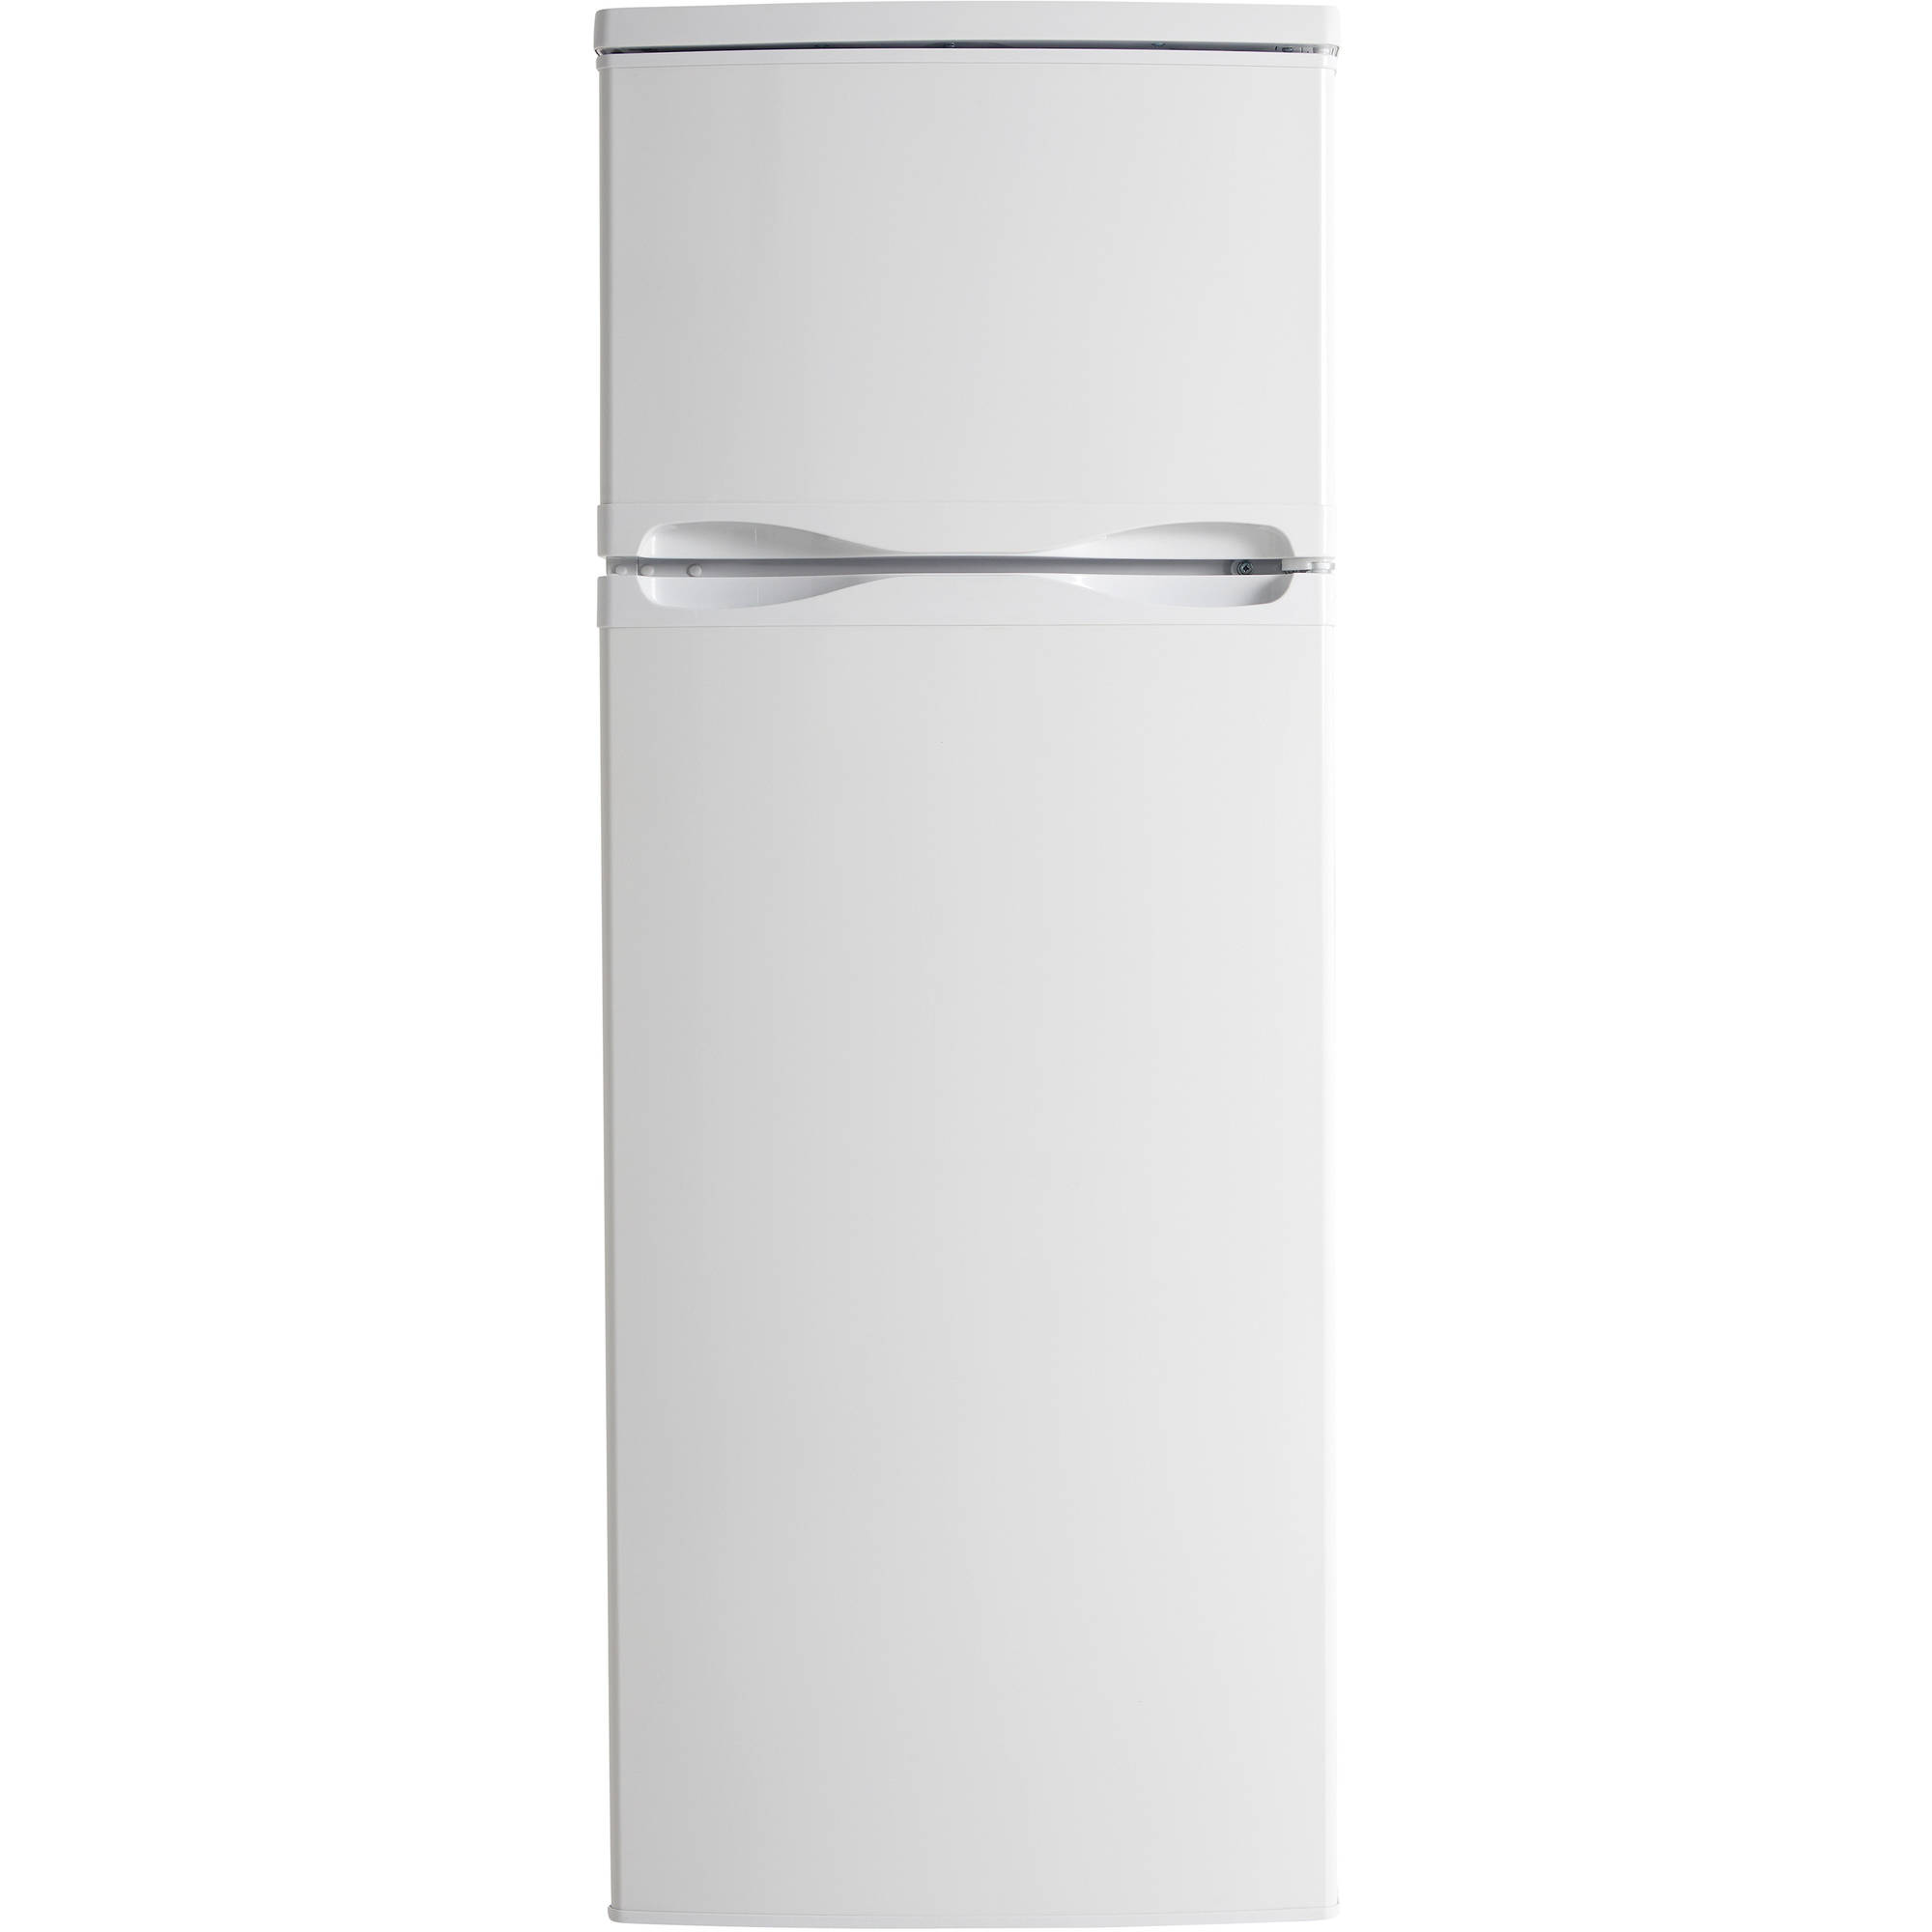 Danby 7.3 cu ft White Top Mount Refrigerator